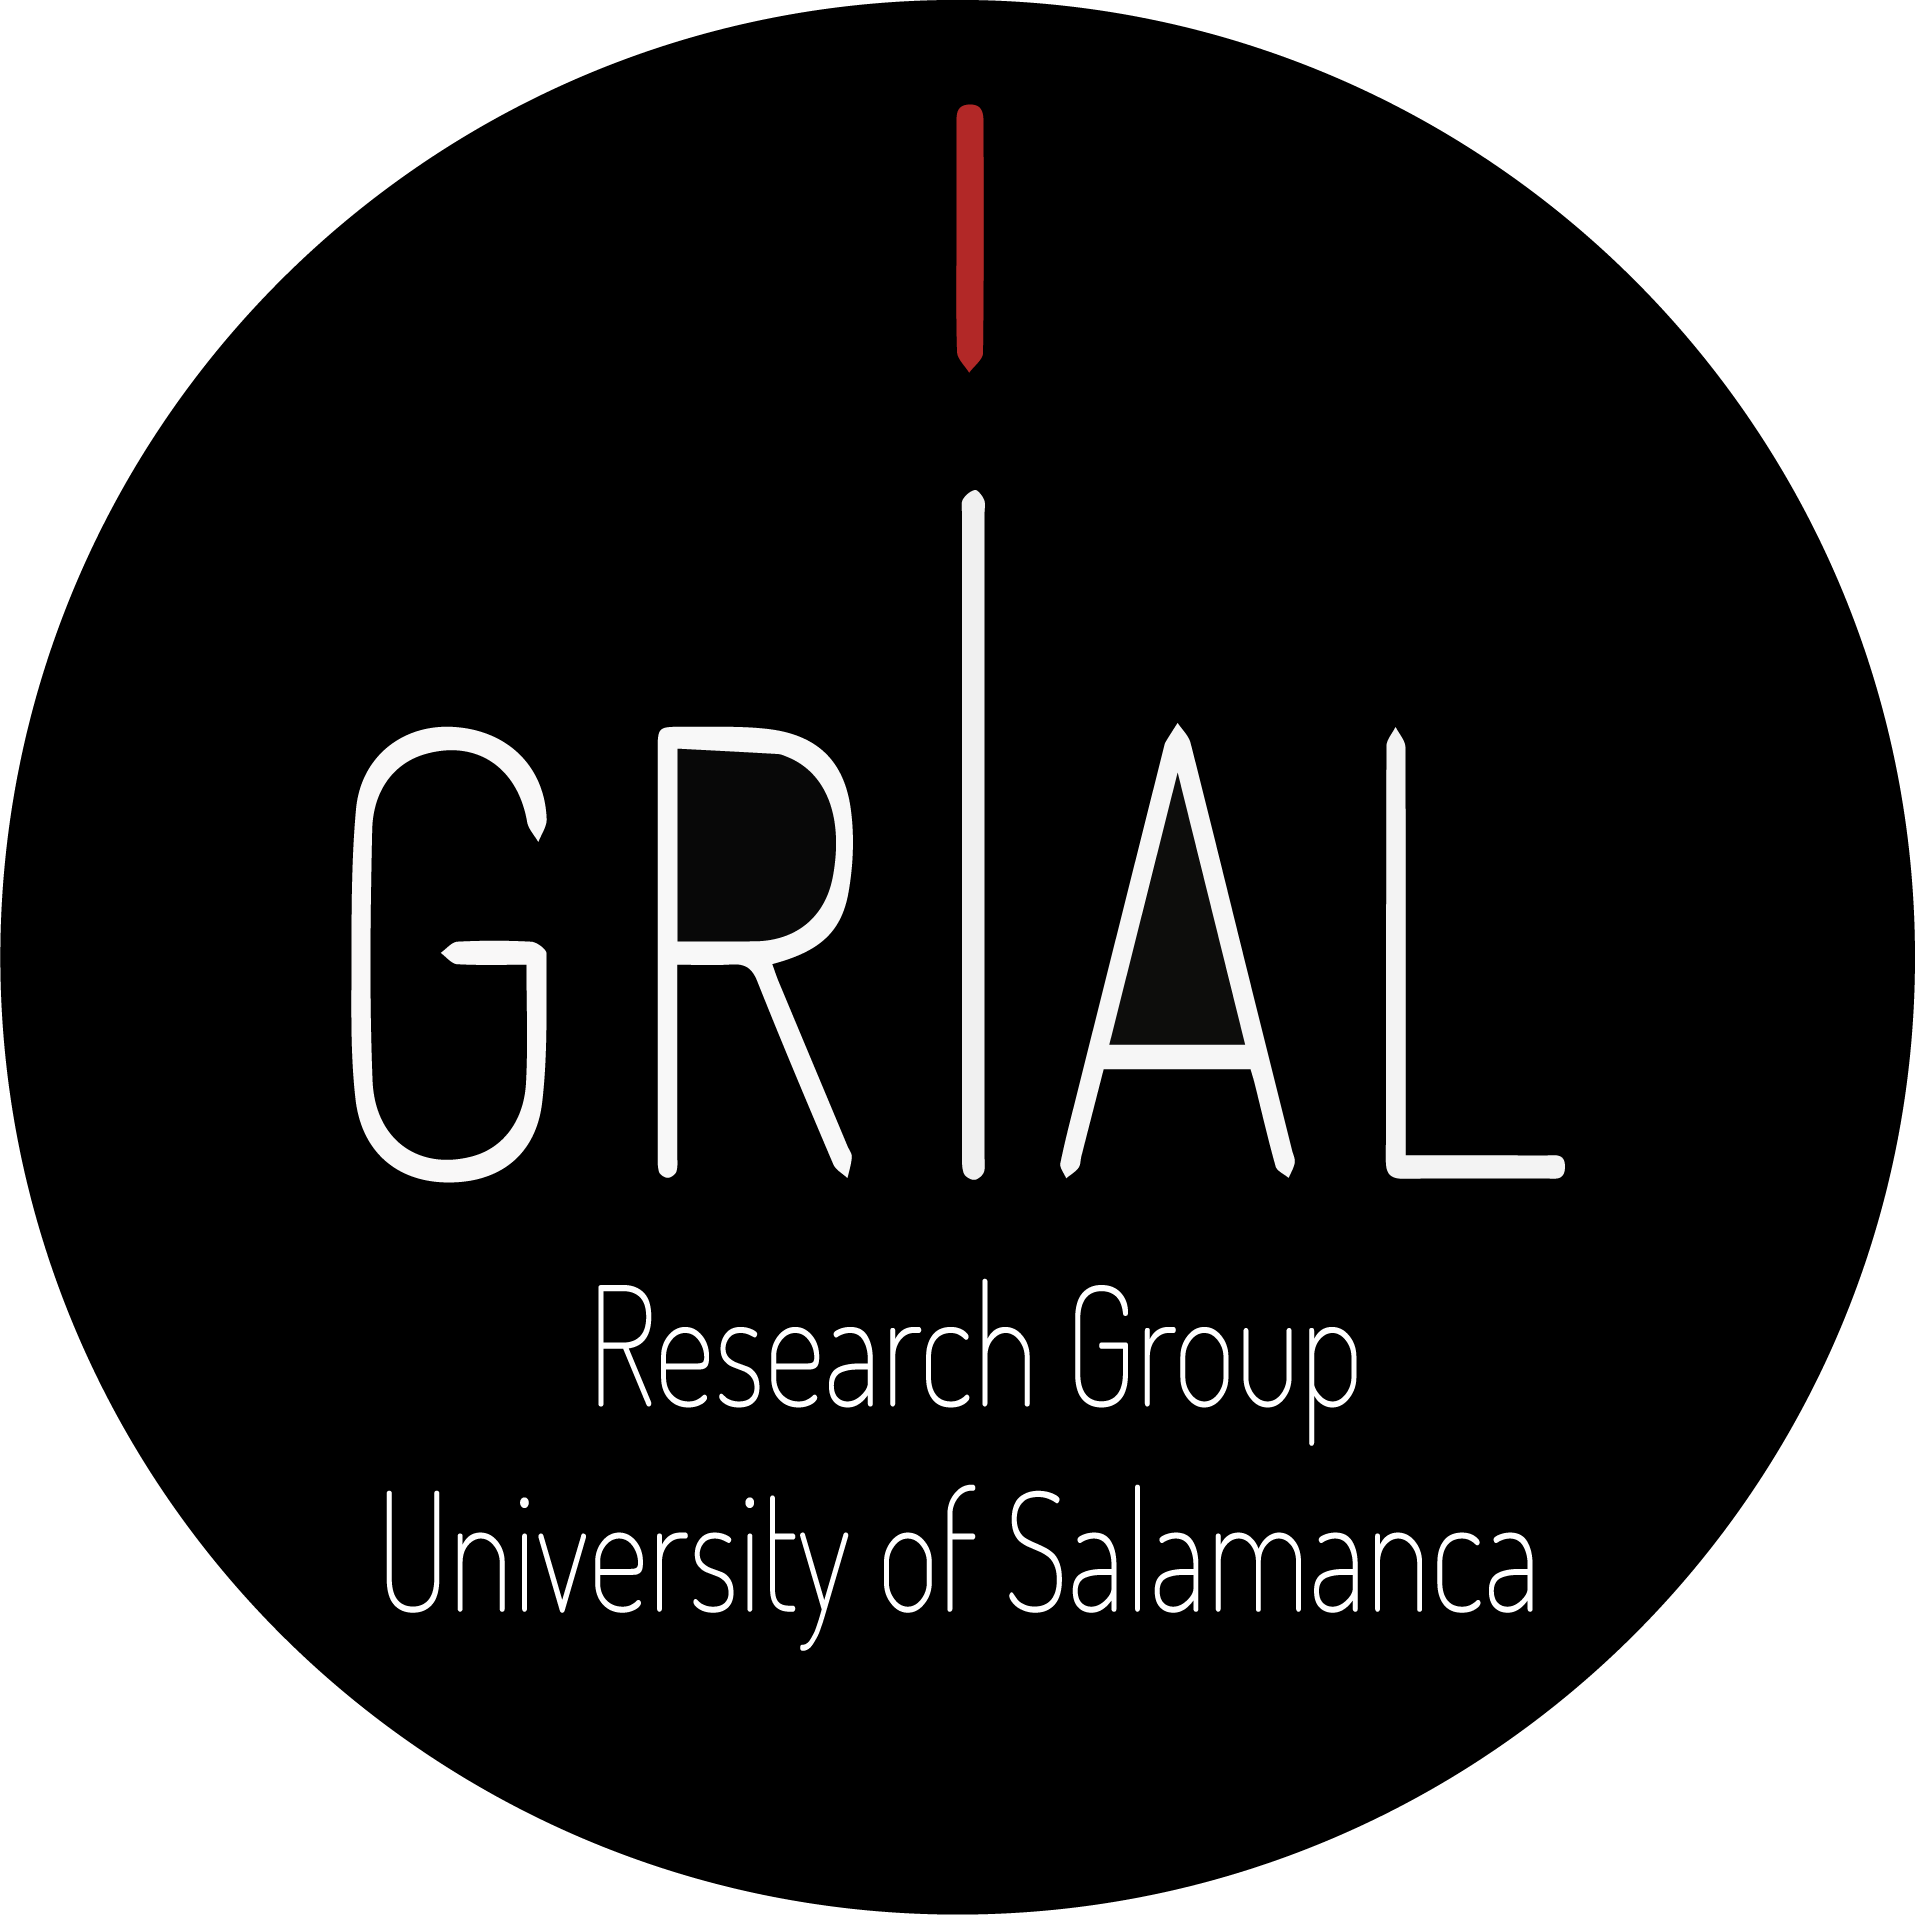 GRIAL - University of Salamanca